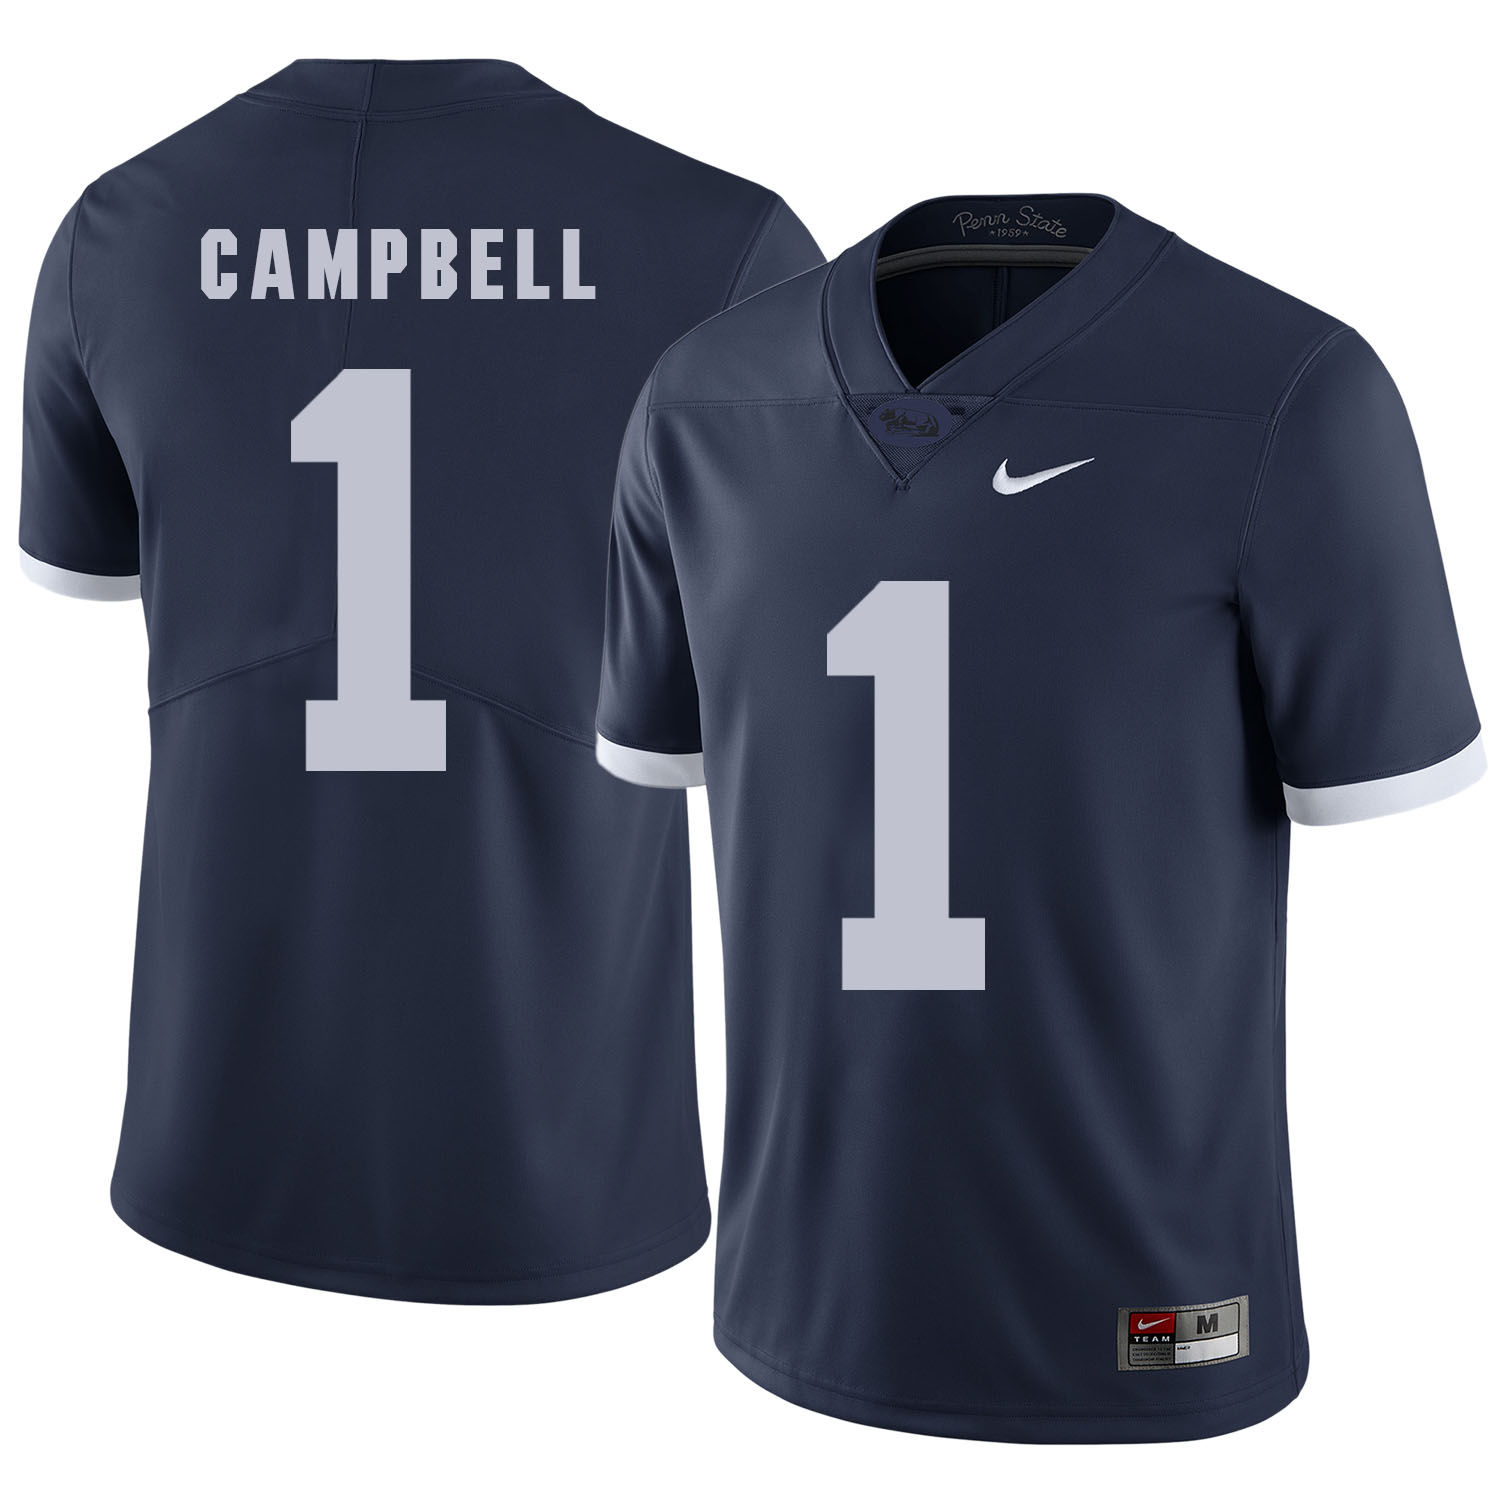 Penn State Nittany Lions 1 Chris Campbell Navy College Football Jersey